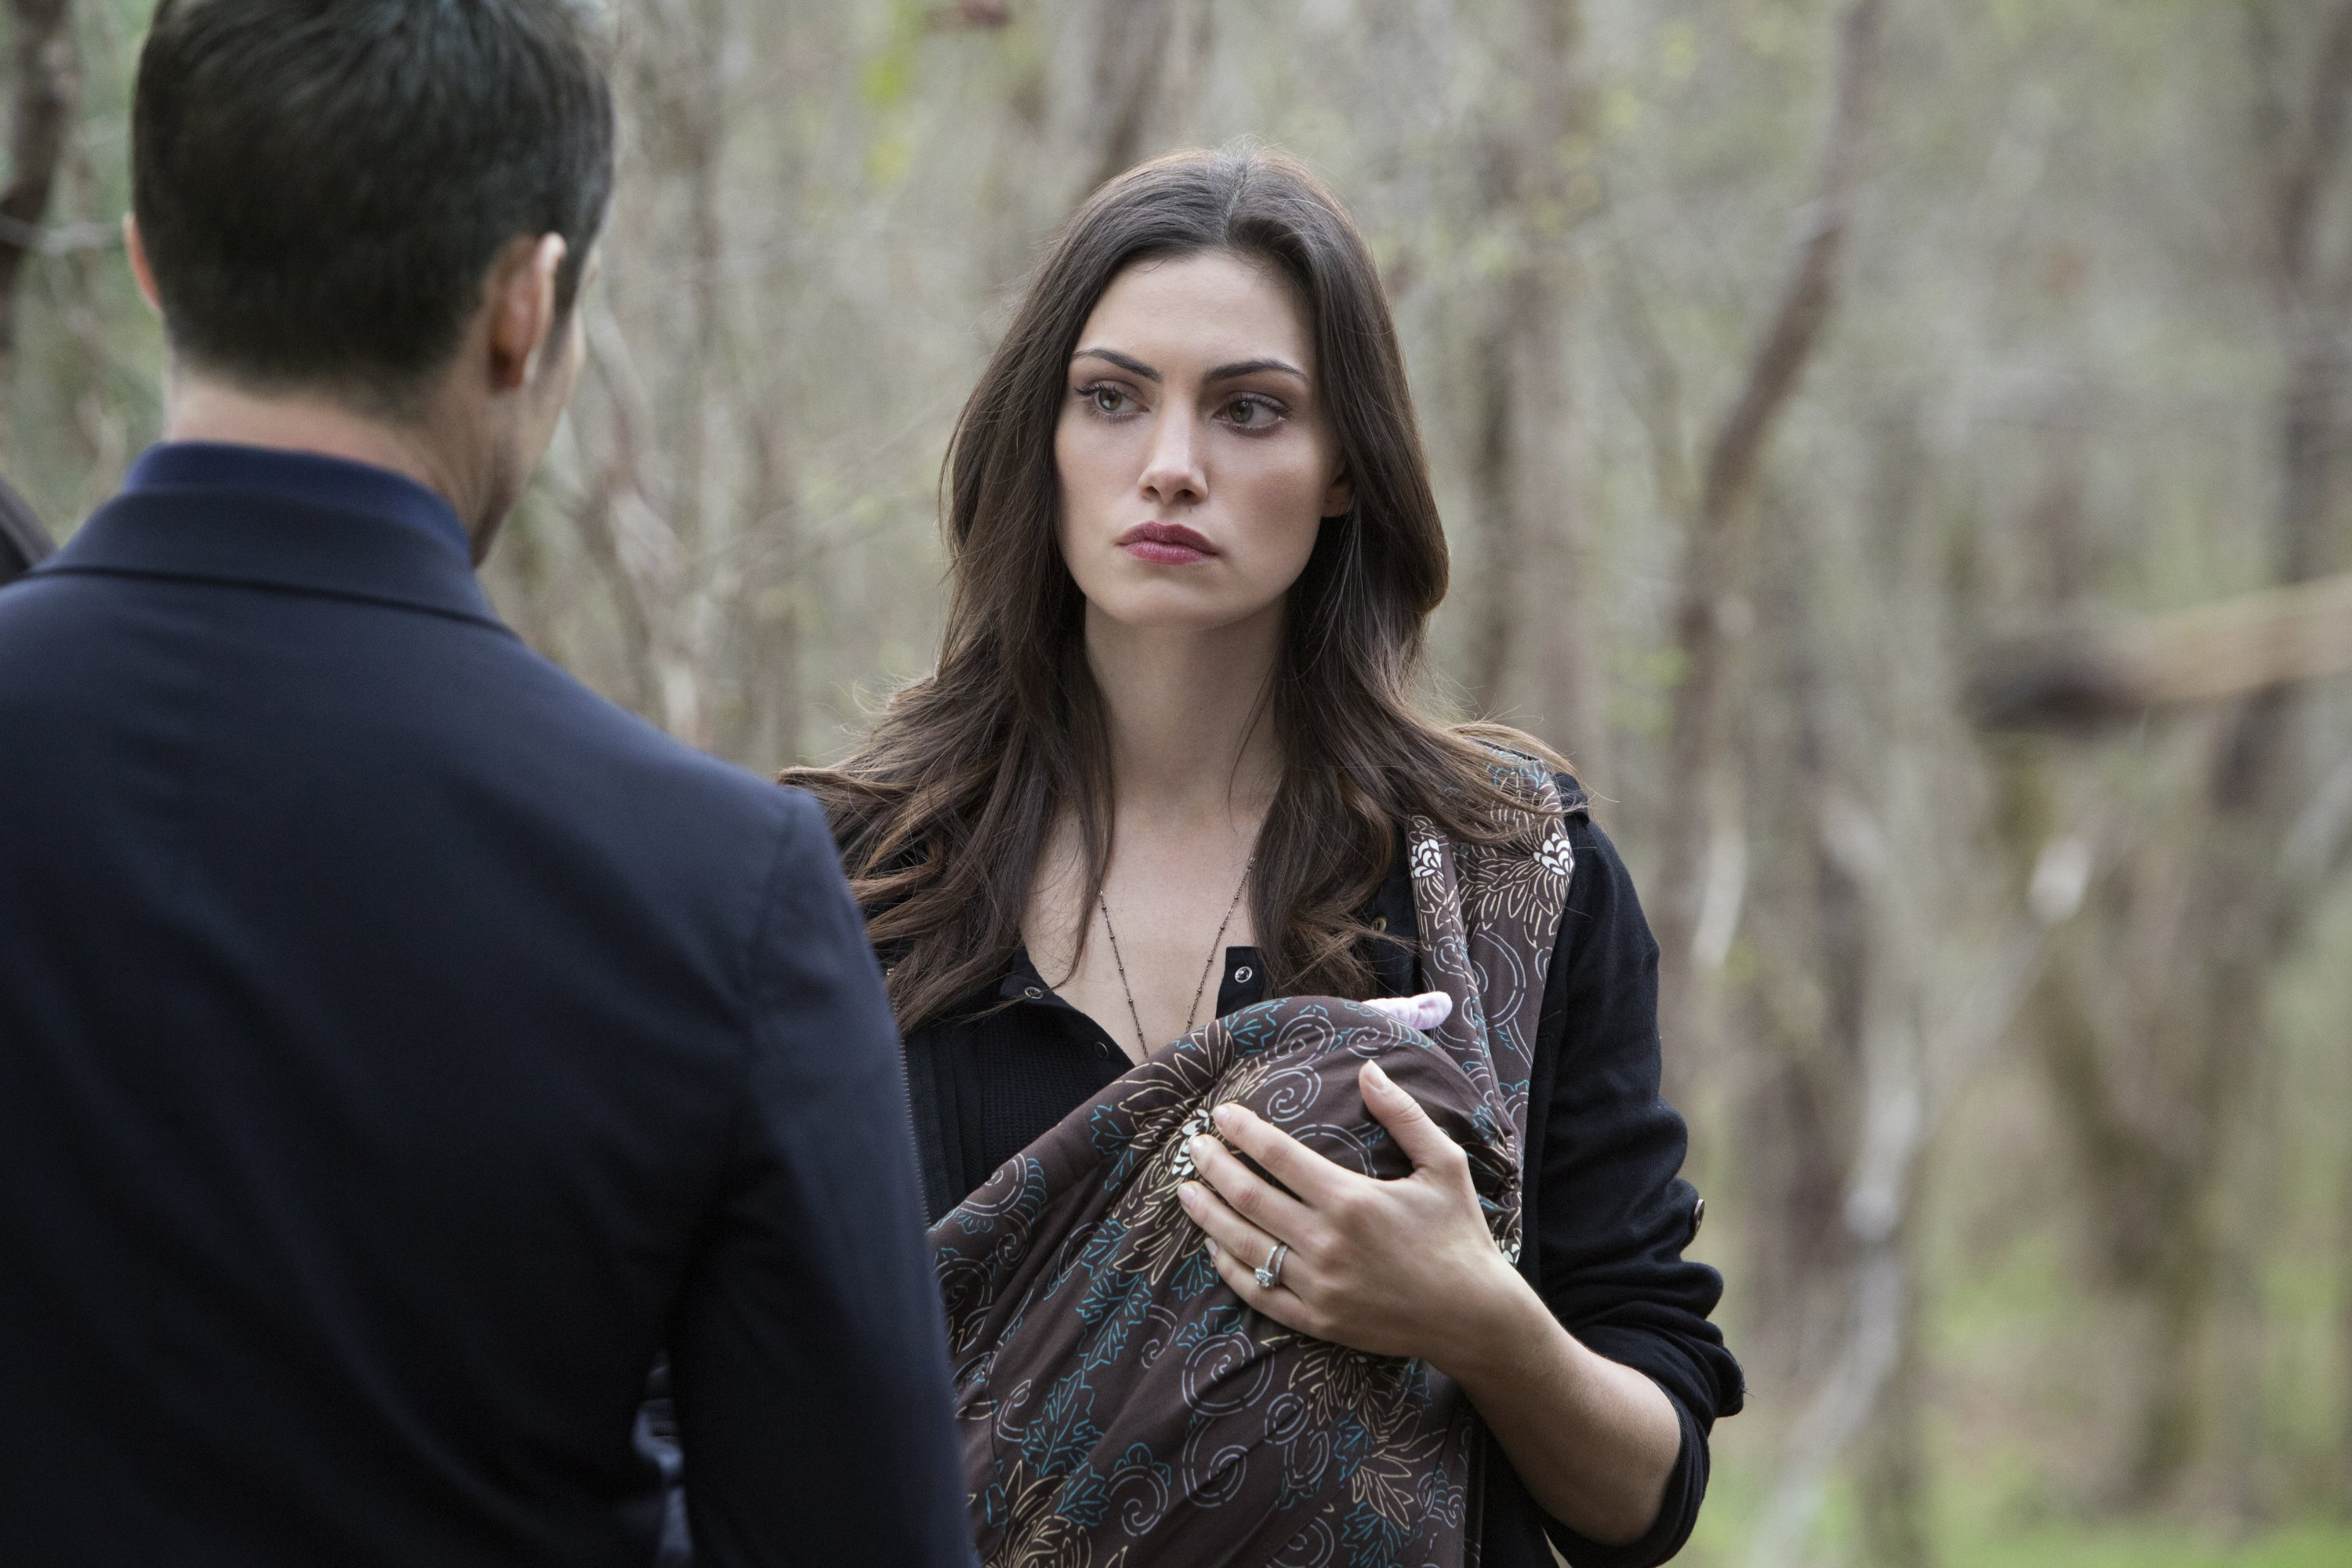 File:The Originals - Episode 2 20 - City Beneath The Sea - Promotional Photos(b).jpg